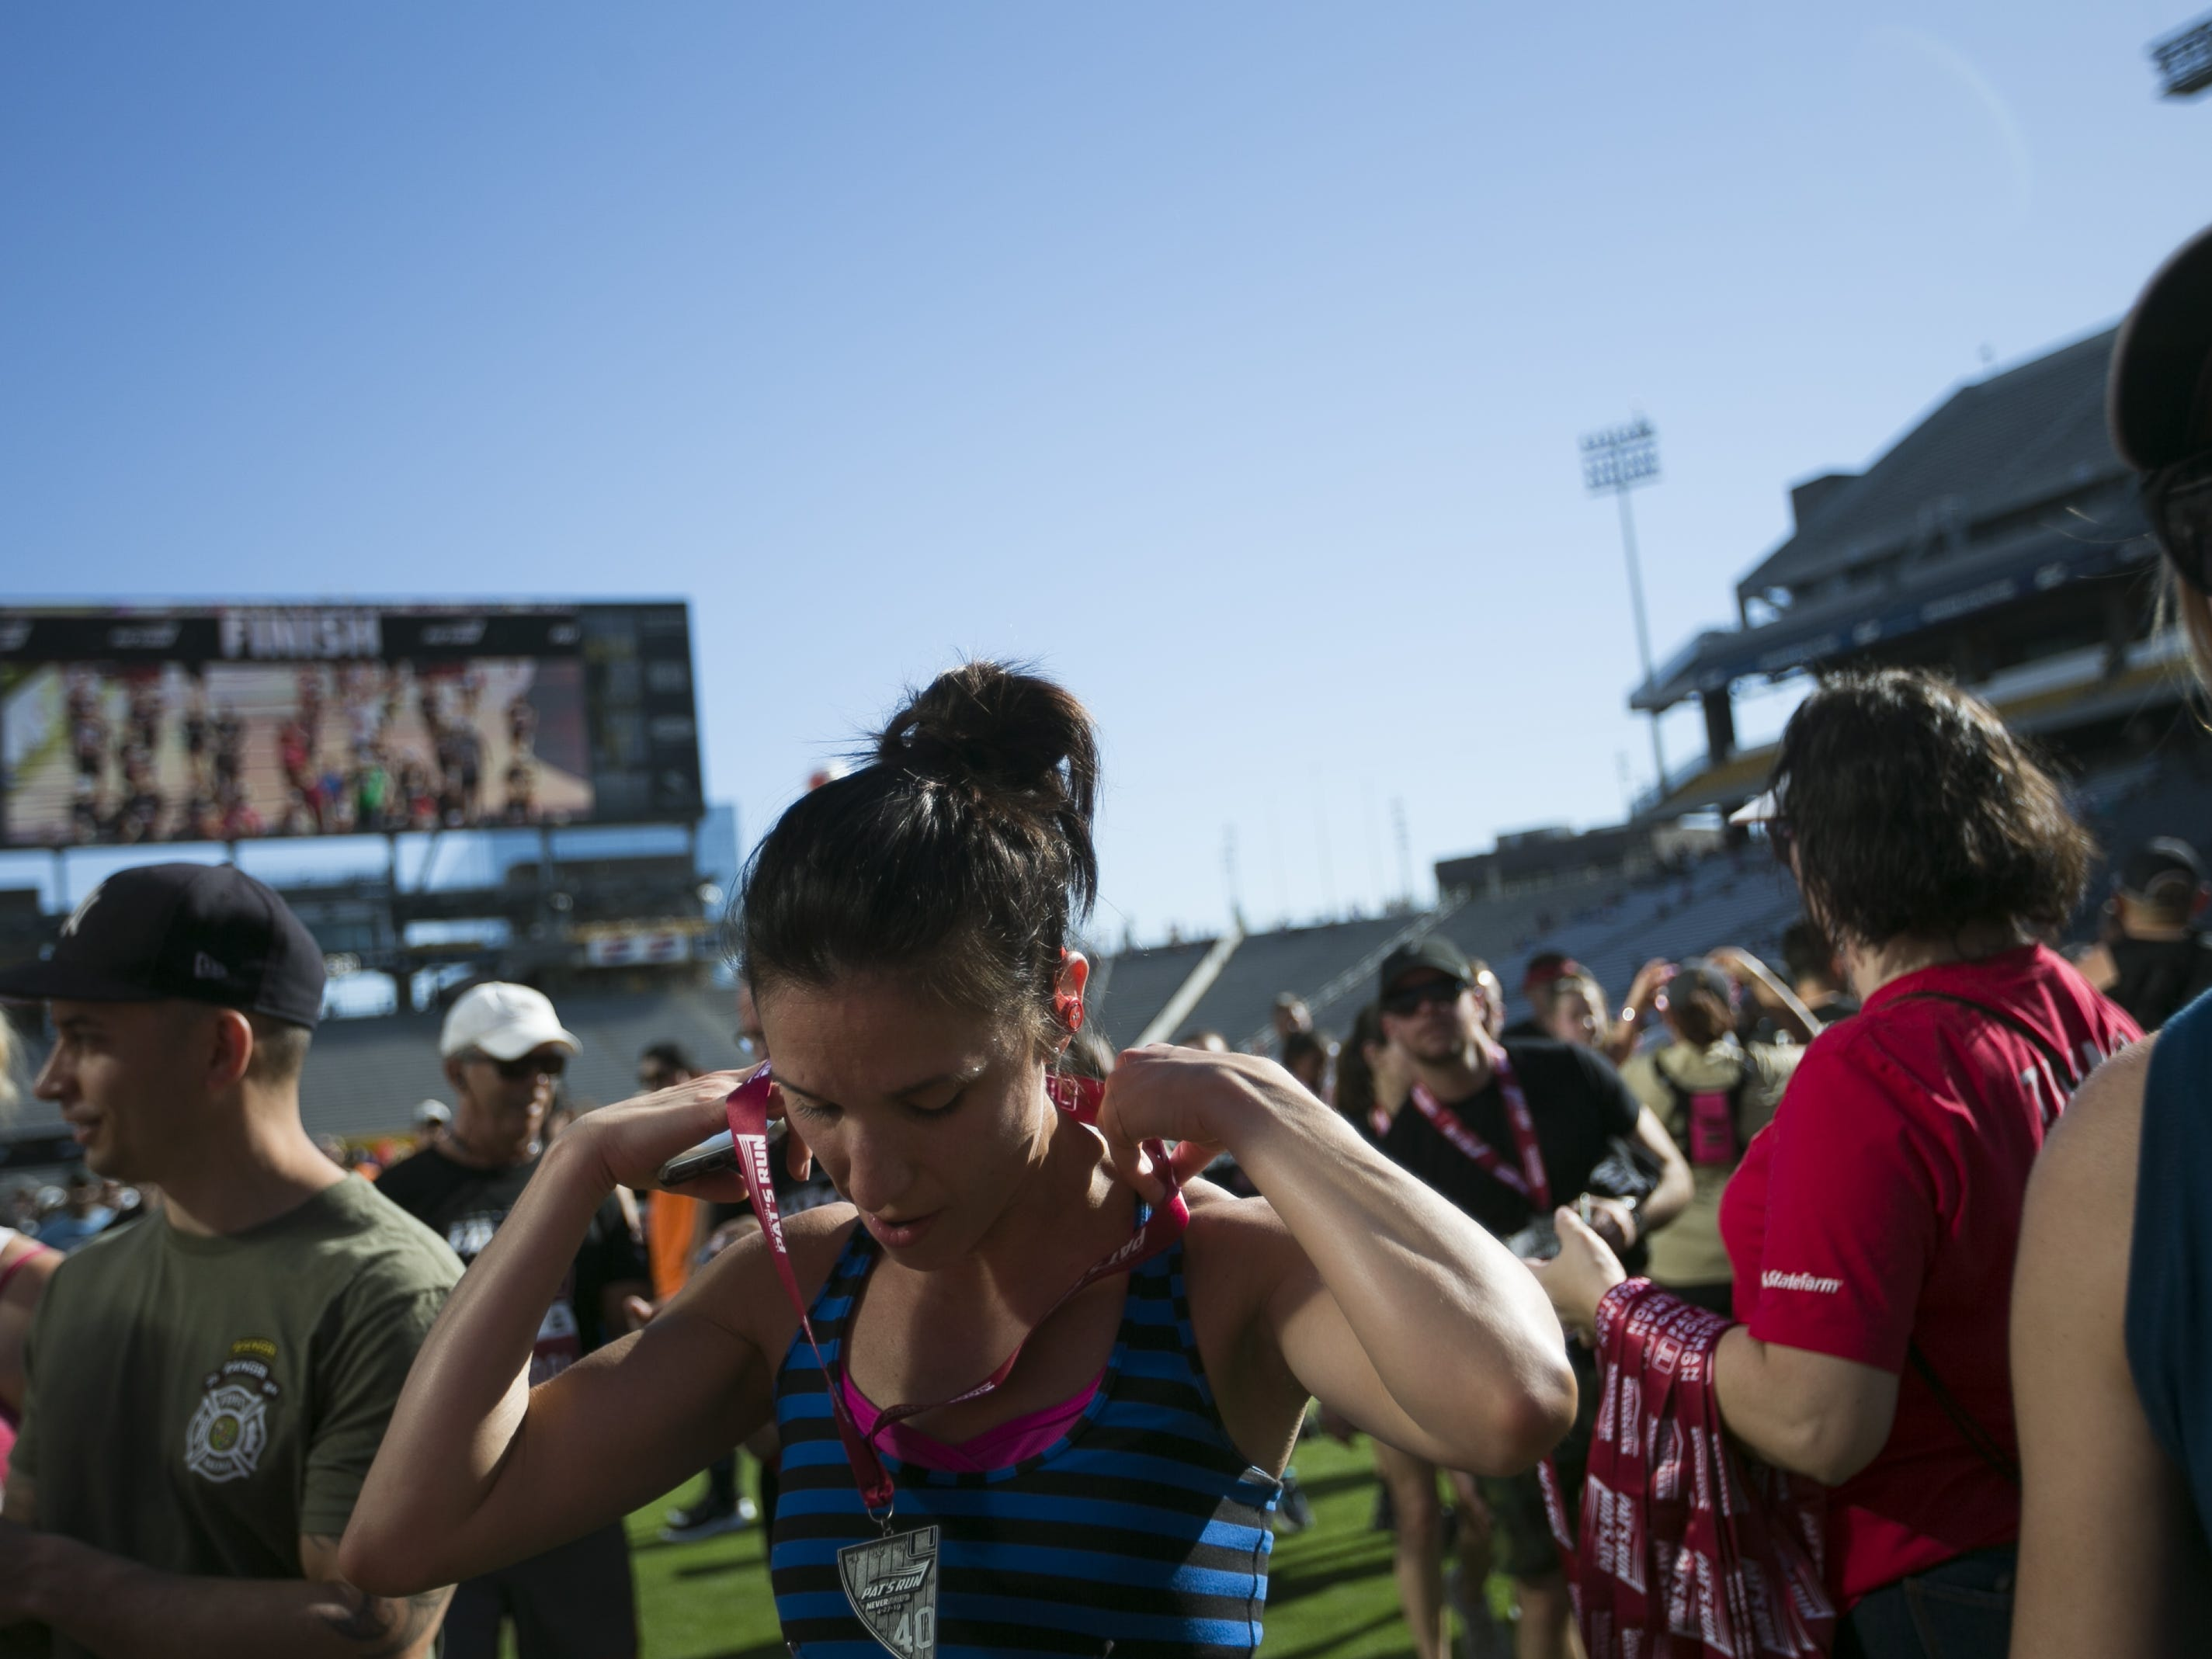 Christina Conte places a medal over her neck after finishing Pat's Run 2019 in Tempe on April 27, 2019.